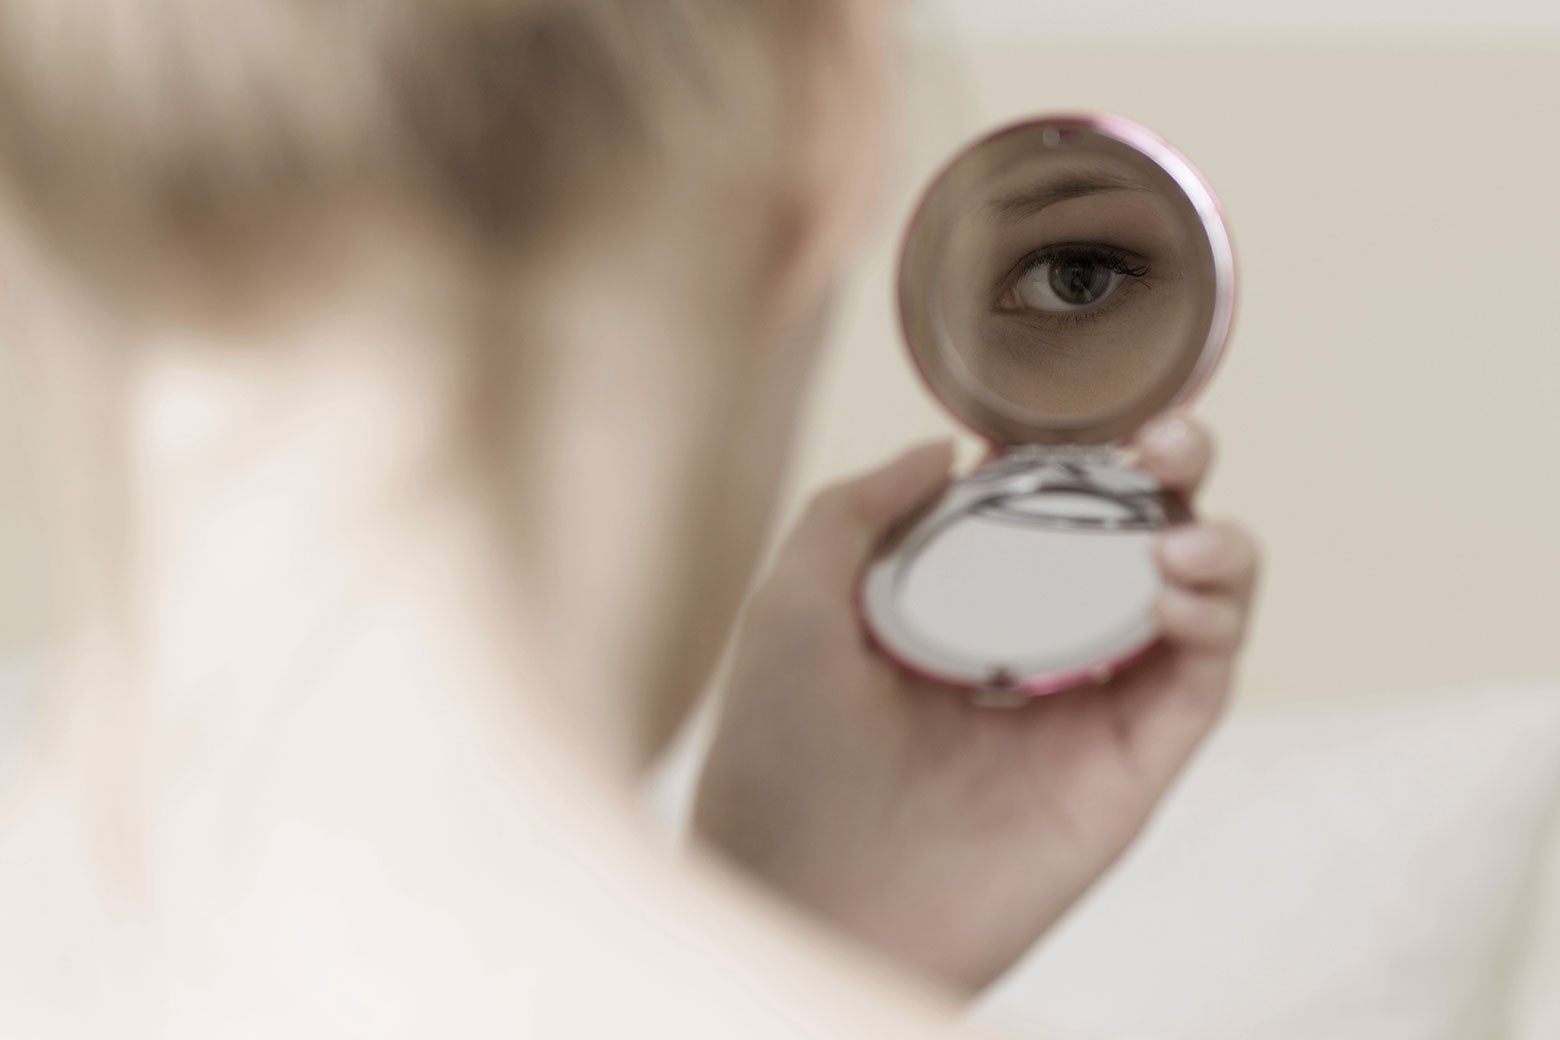 A person looks at their face in a compact mirror.